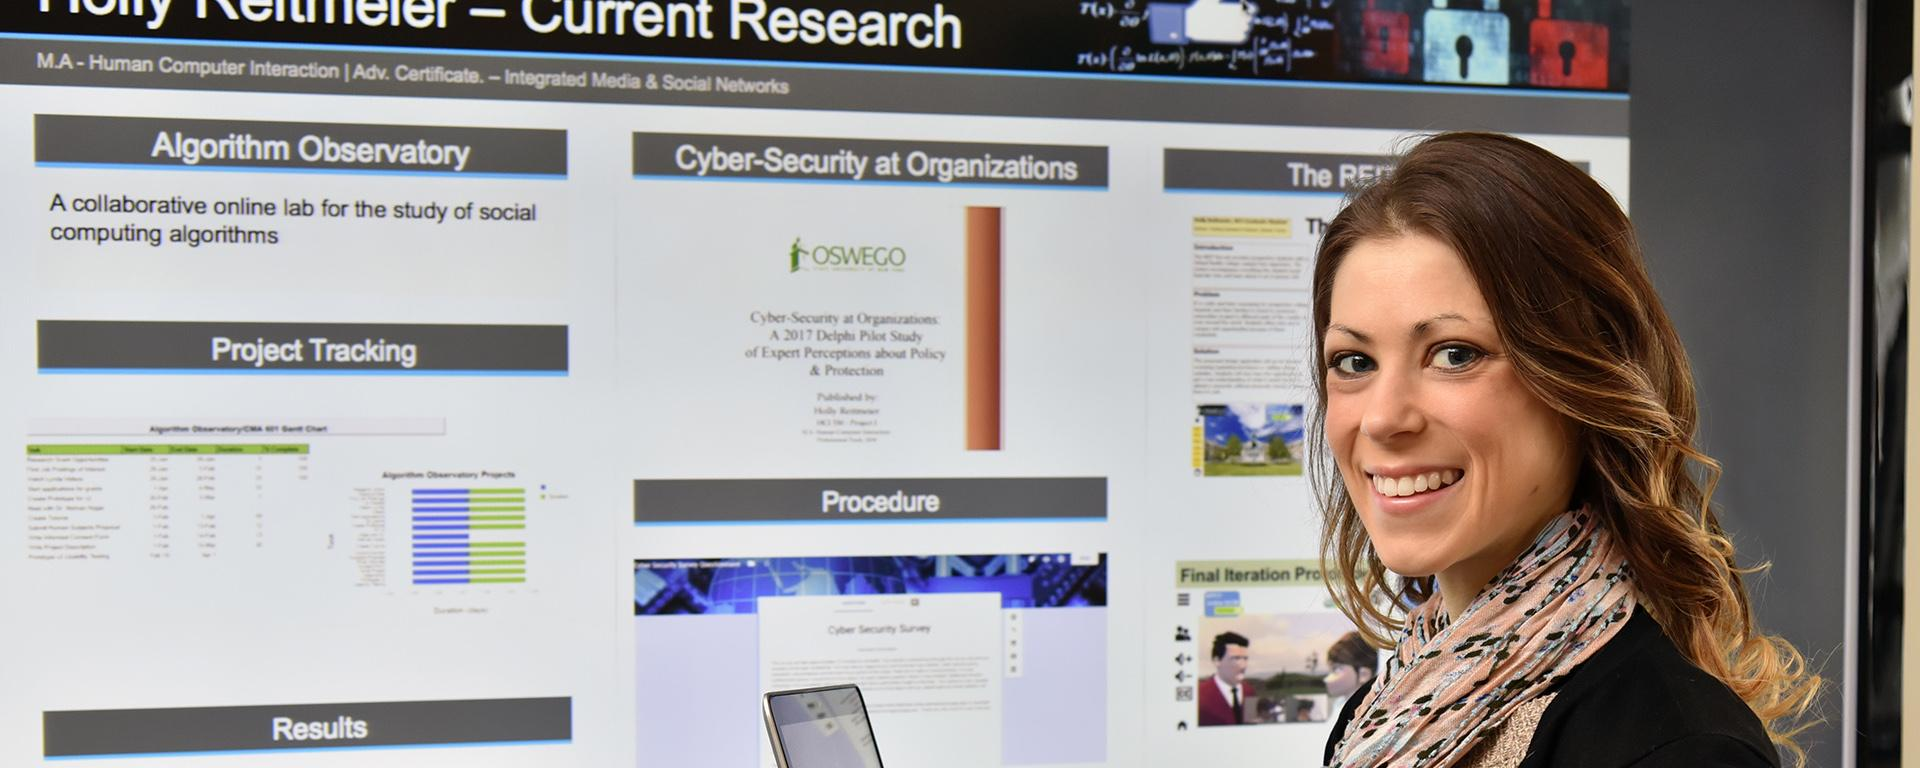 Holly Reitmeier showing cybersecurity research